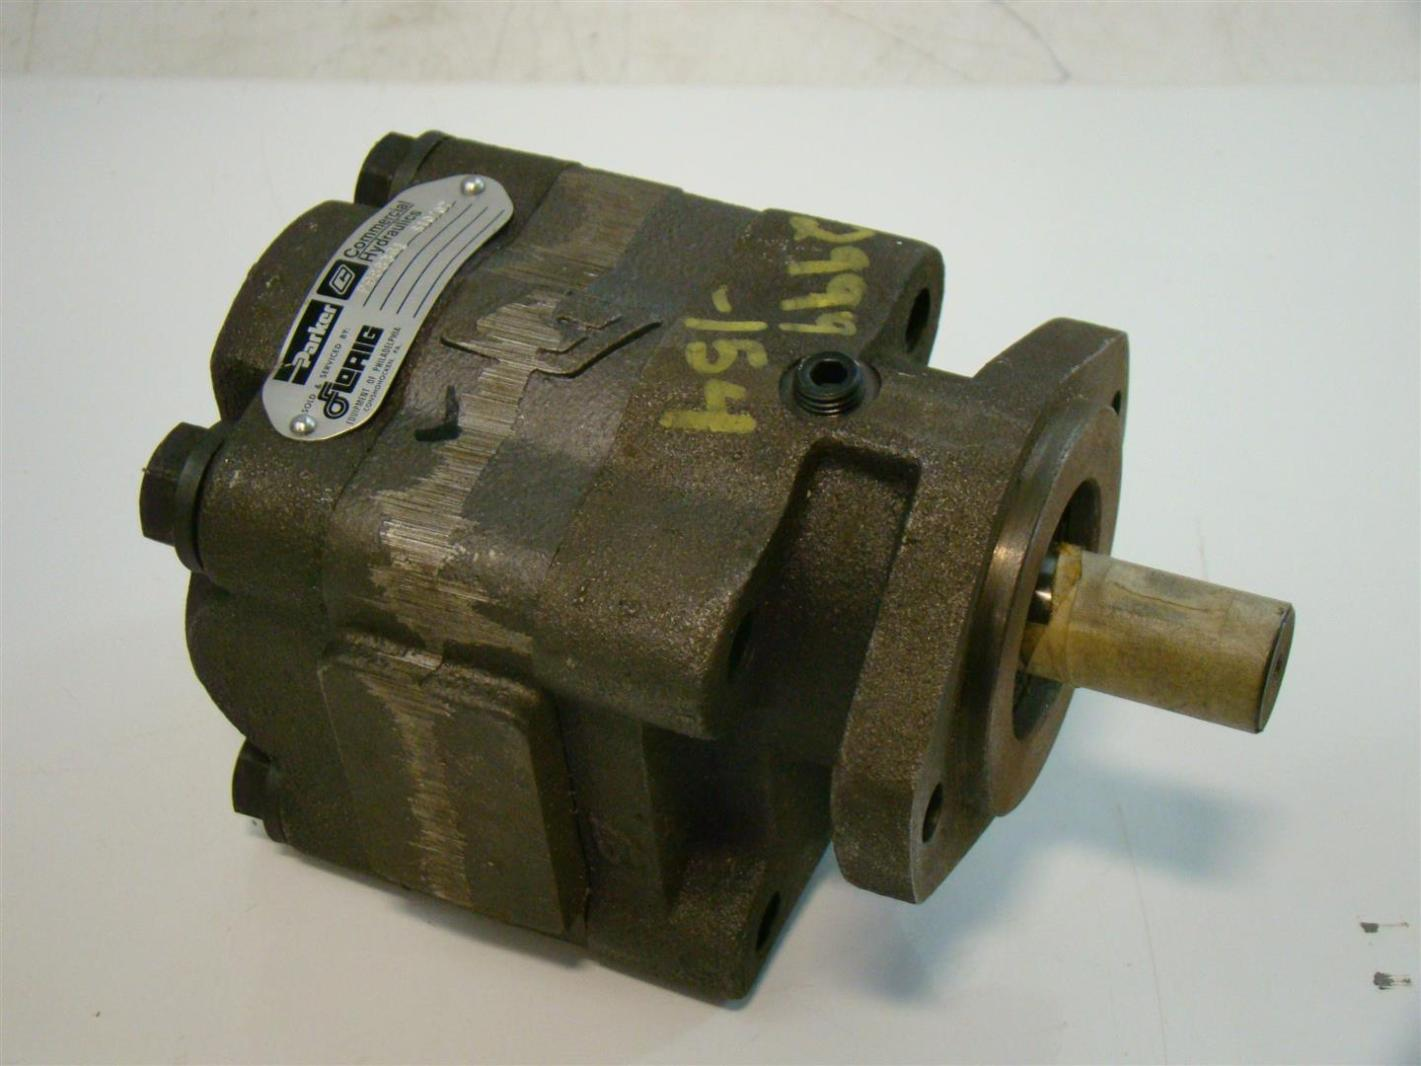 Florig parker hydraulic gear motor p988361 2999 0154 for Parker hydraulic pumps and motors